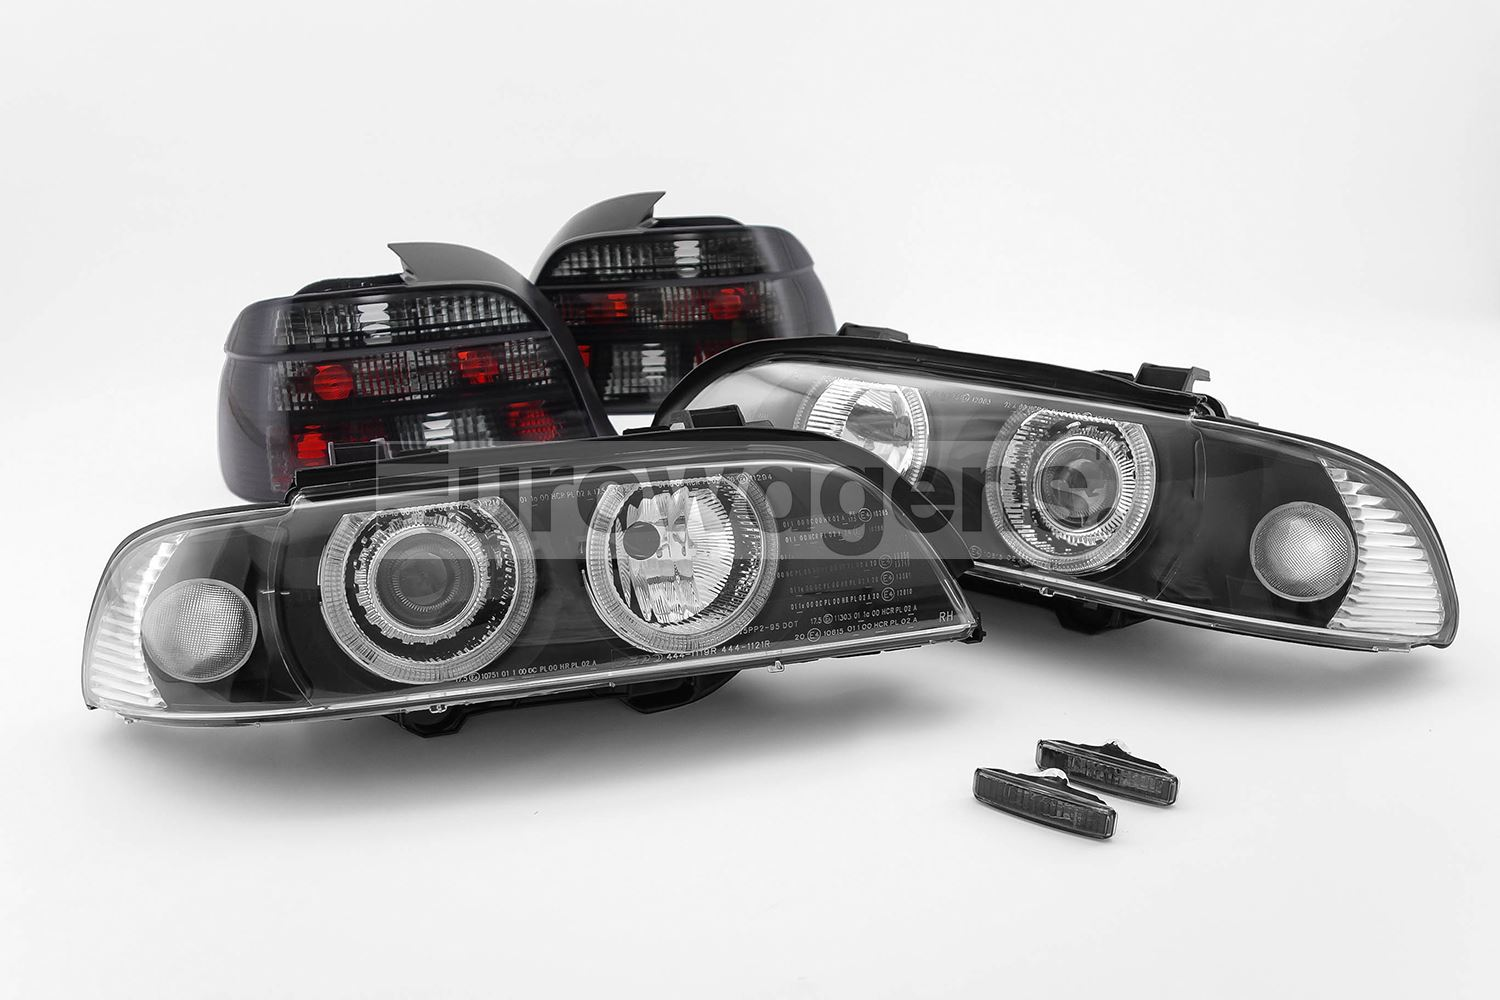 2000 Bmw 528i Headlights 404 Not Found Dorman 540i M5 Ebay 5 Series E39 95 00 Angel Eyes Black Rear Lights Indicators Set